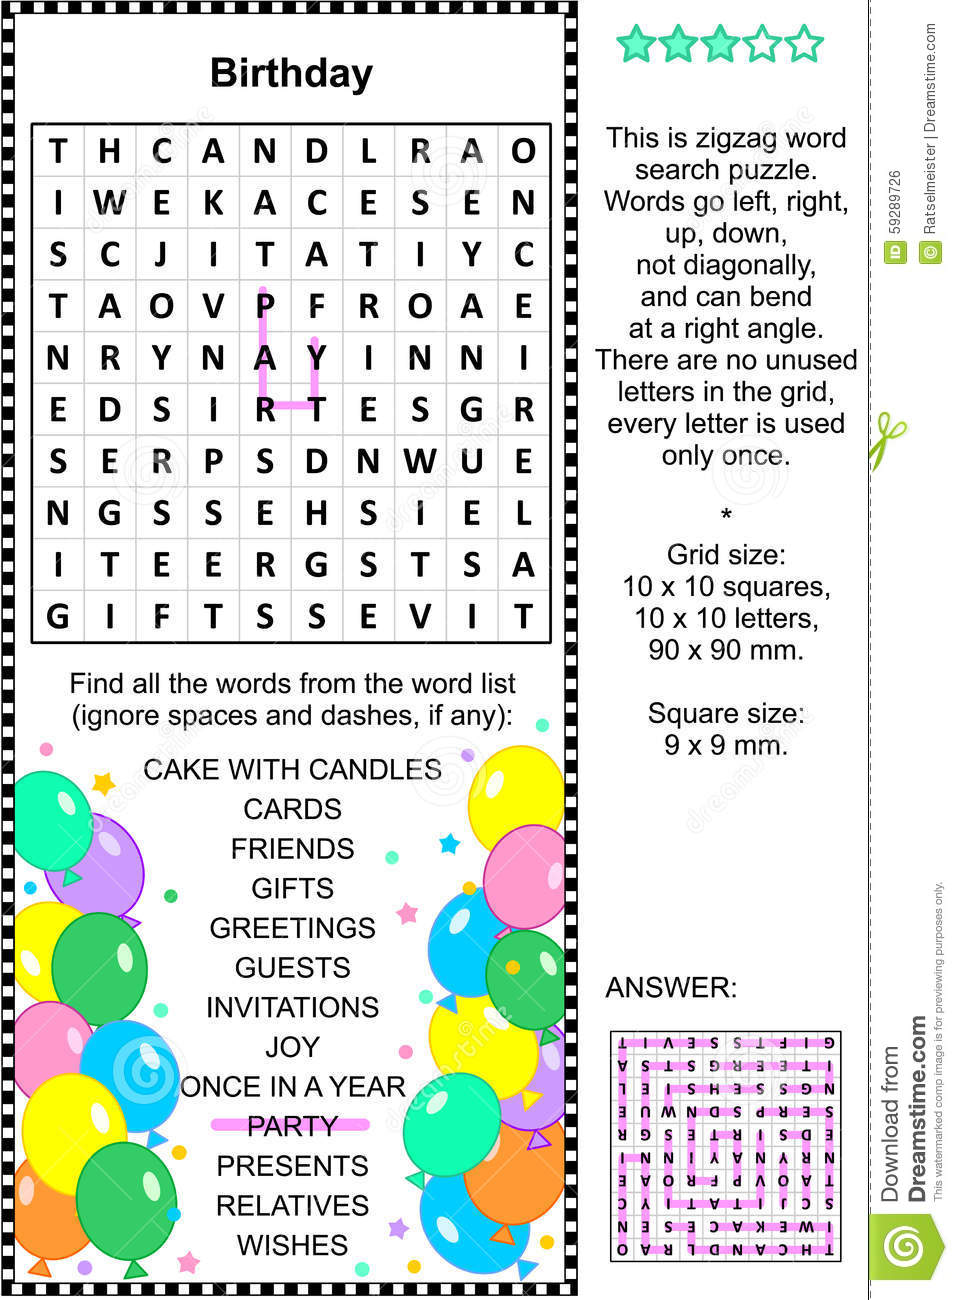 Stock Illustration Birthday Wordsearch Puzzle Themed Word Search English Language Answer Included Image59289726 on M Wordsearch